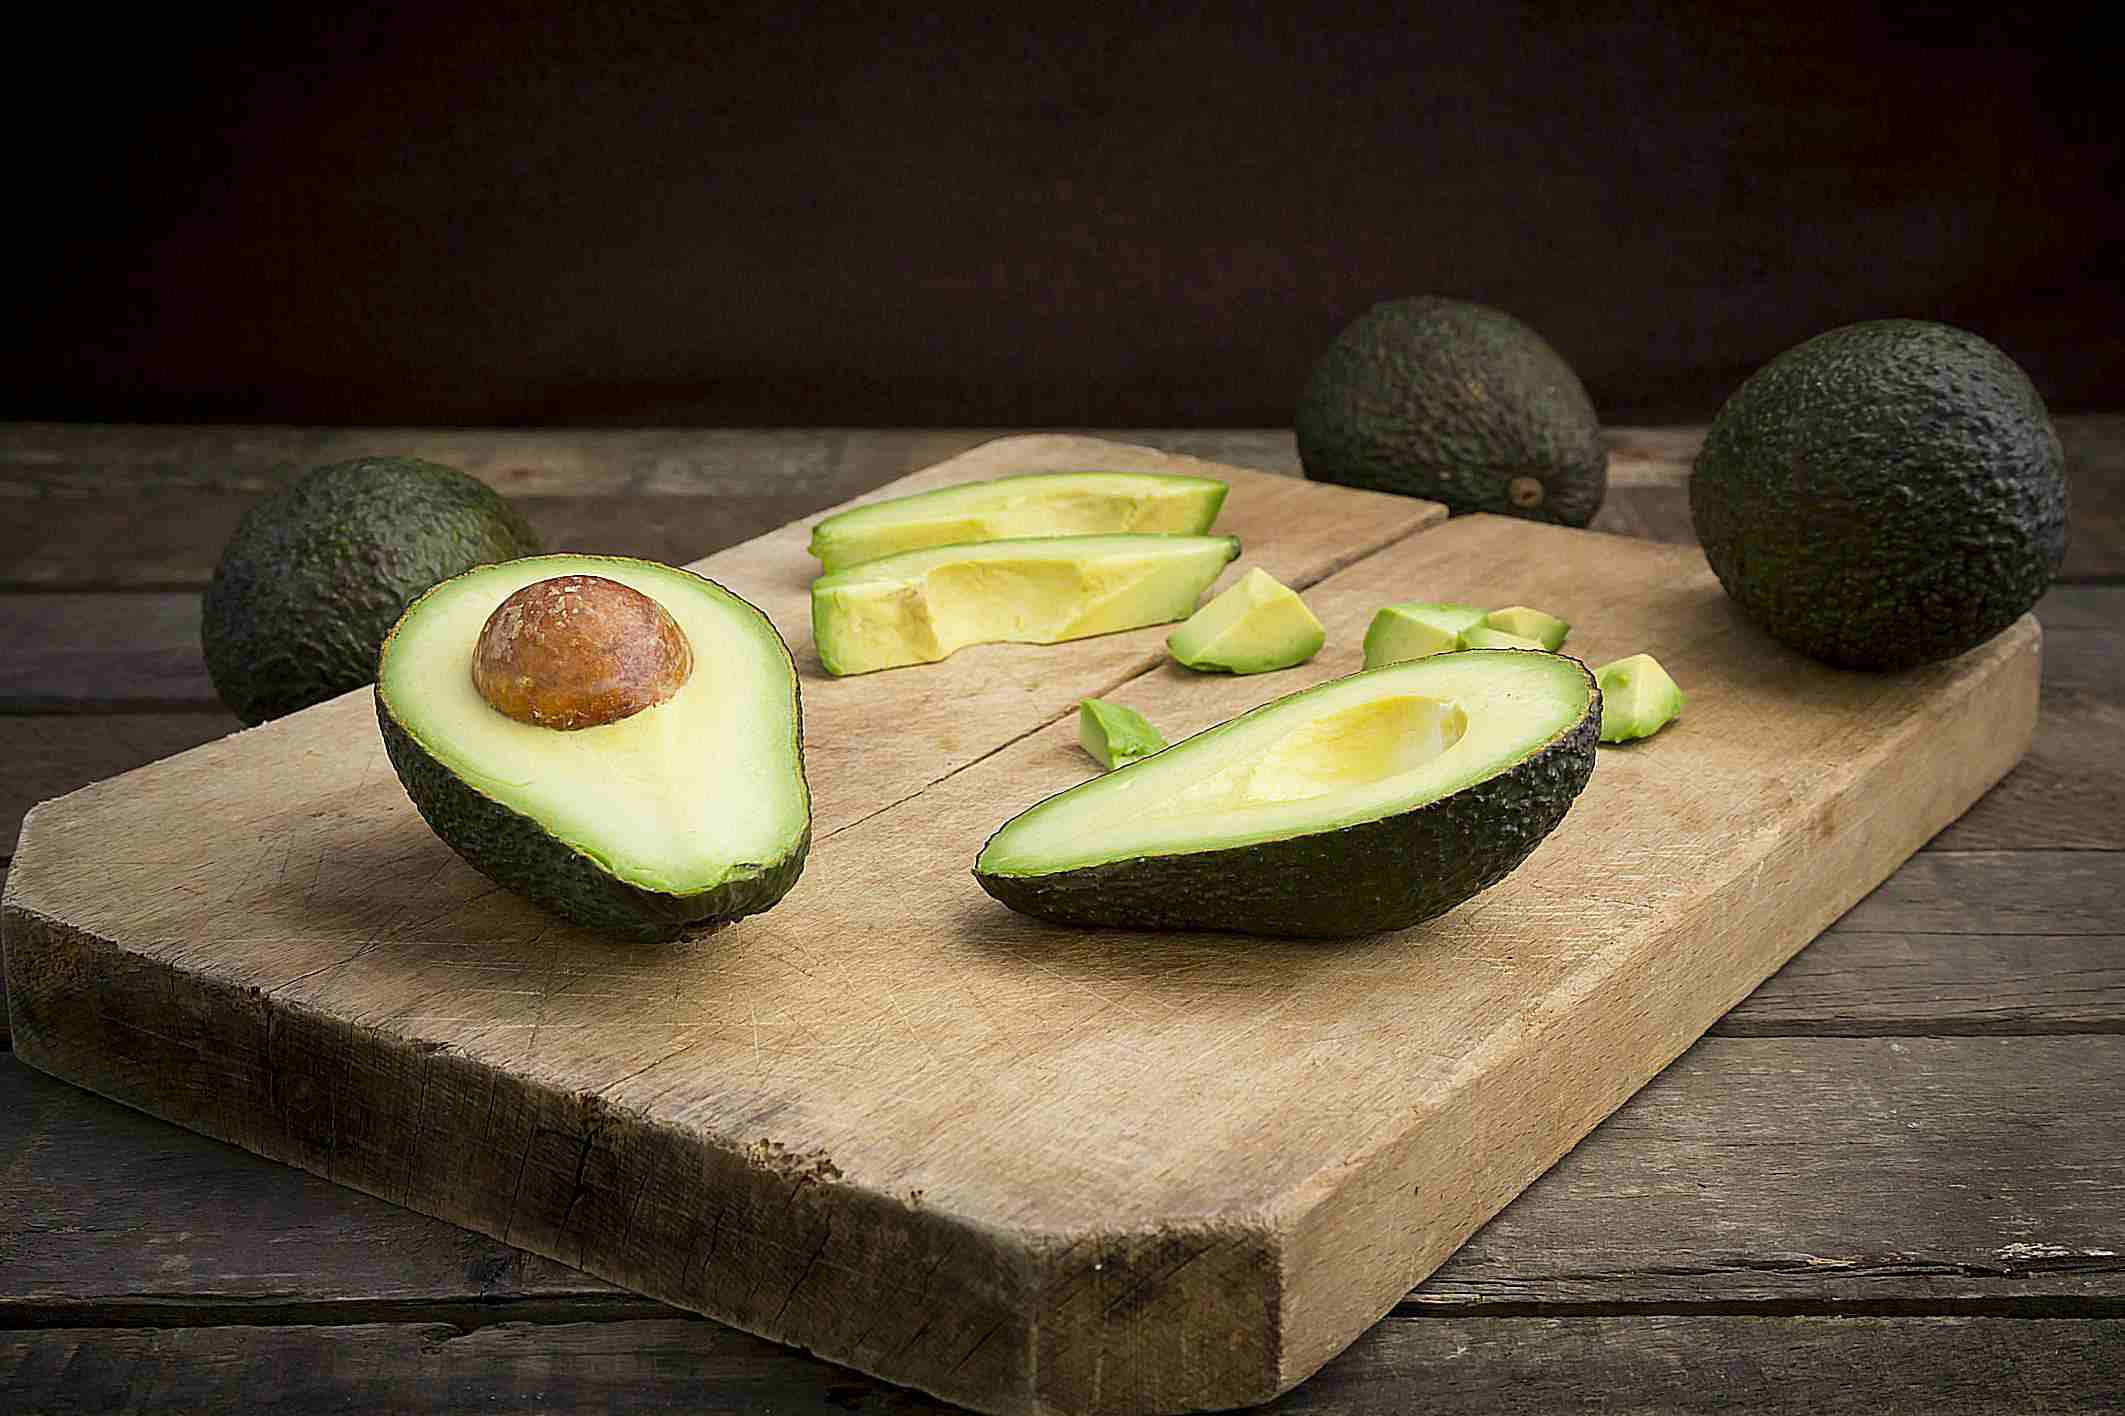 Full and cut up avocados on cutting board